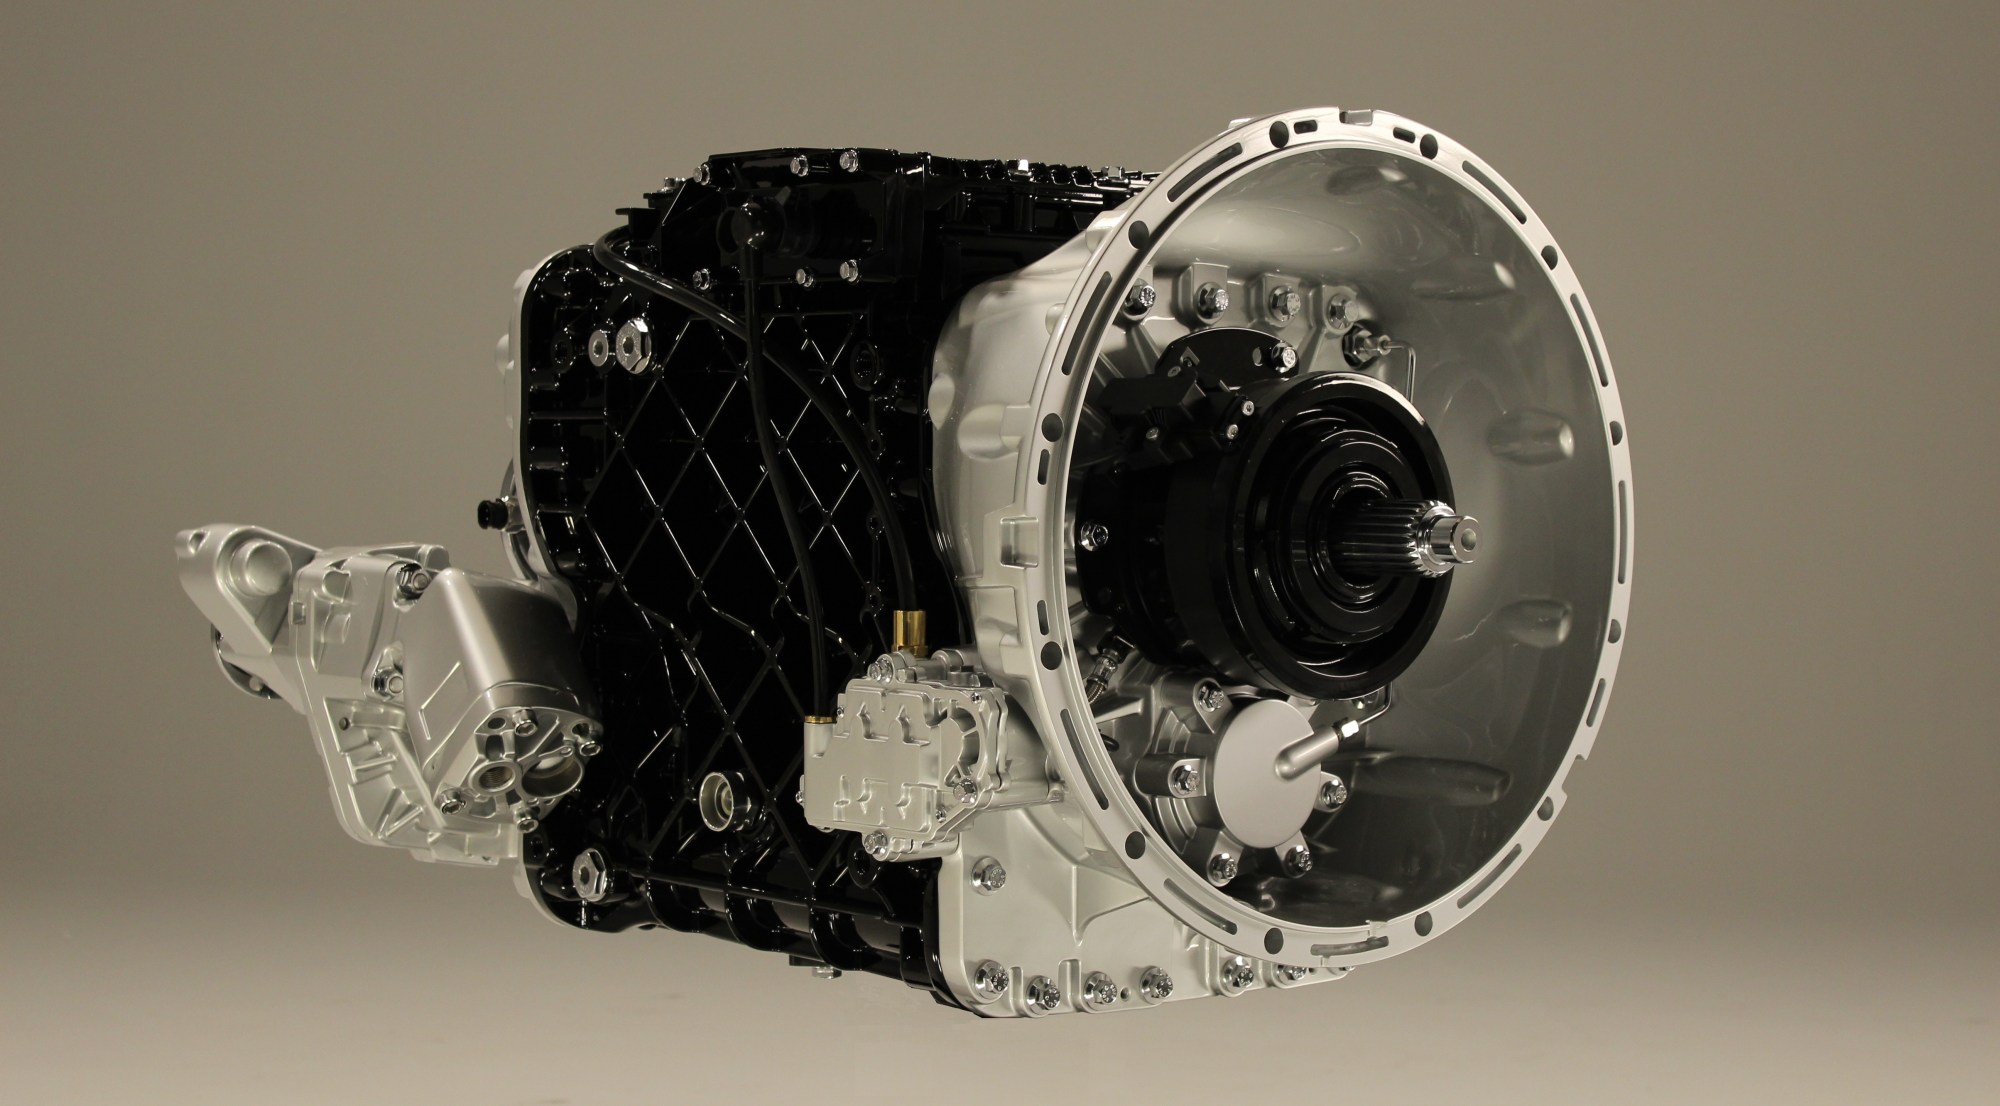 hight resolution of mack s 12 speed mdrive hd transmission beefed up for vocational applications products trucking info